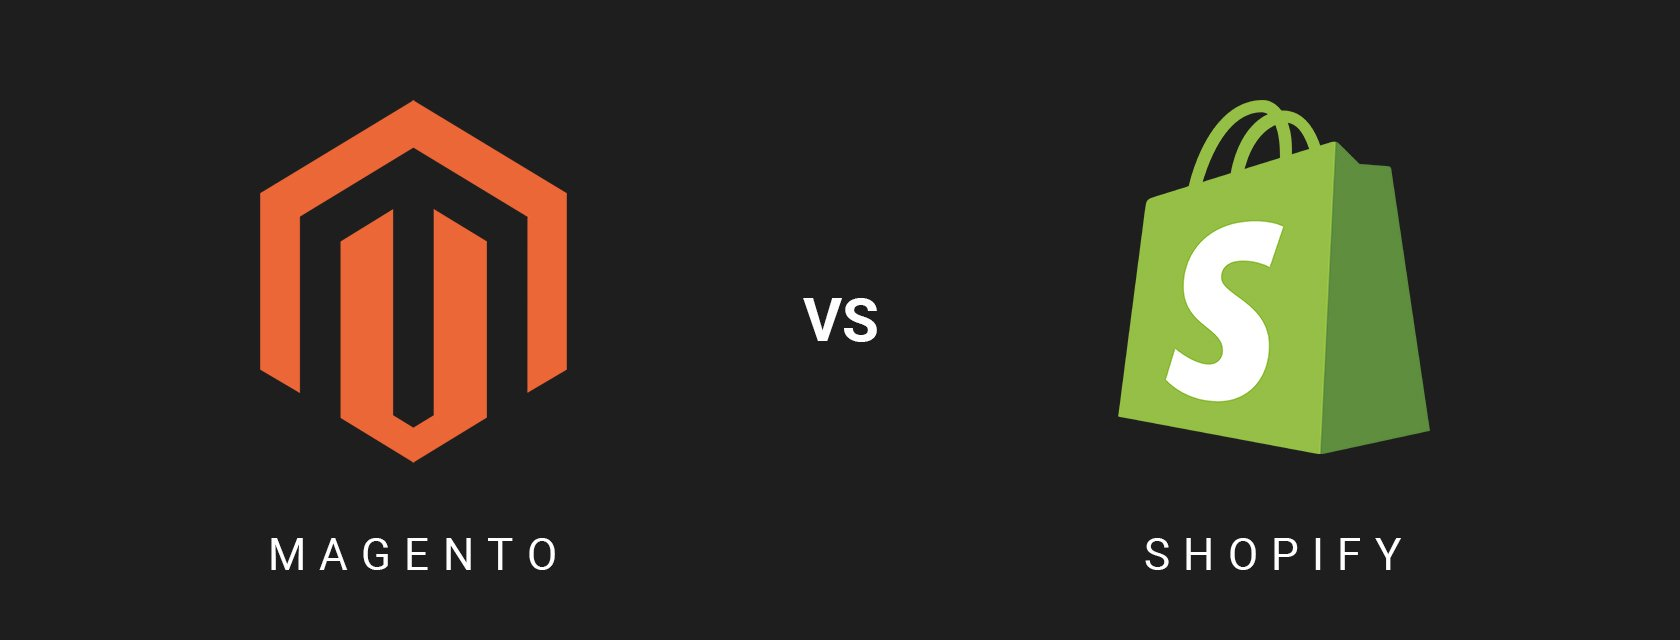 Magento vs Shopify – Top 5 Criteria to choose the right eCommerce platform